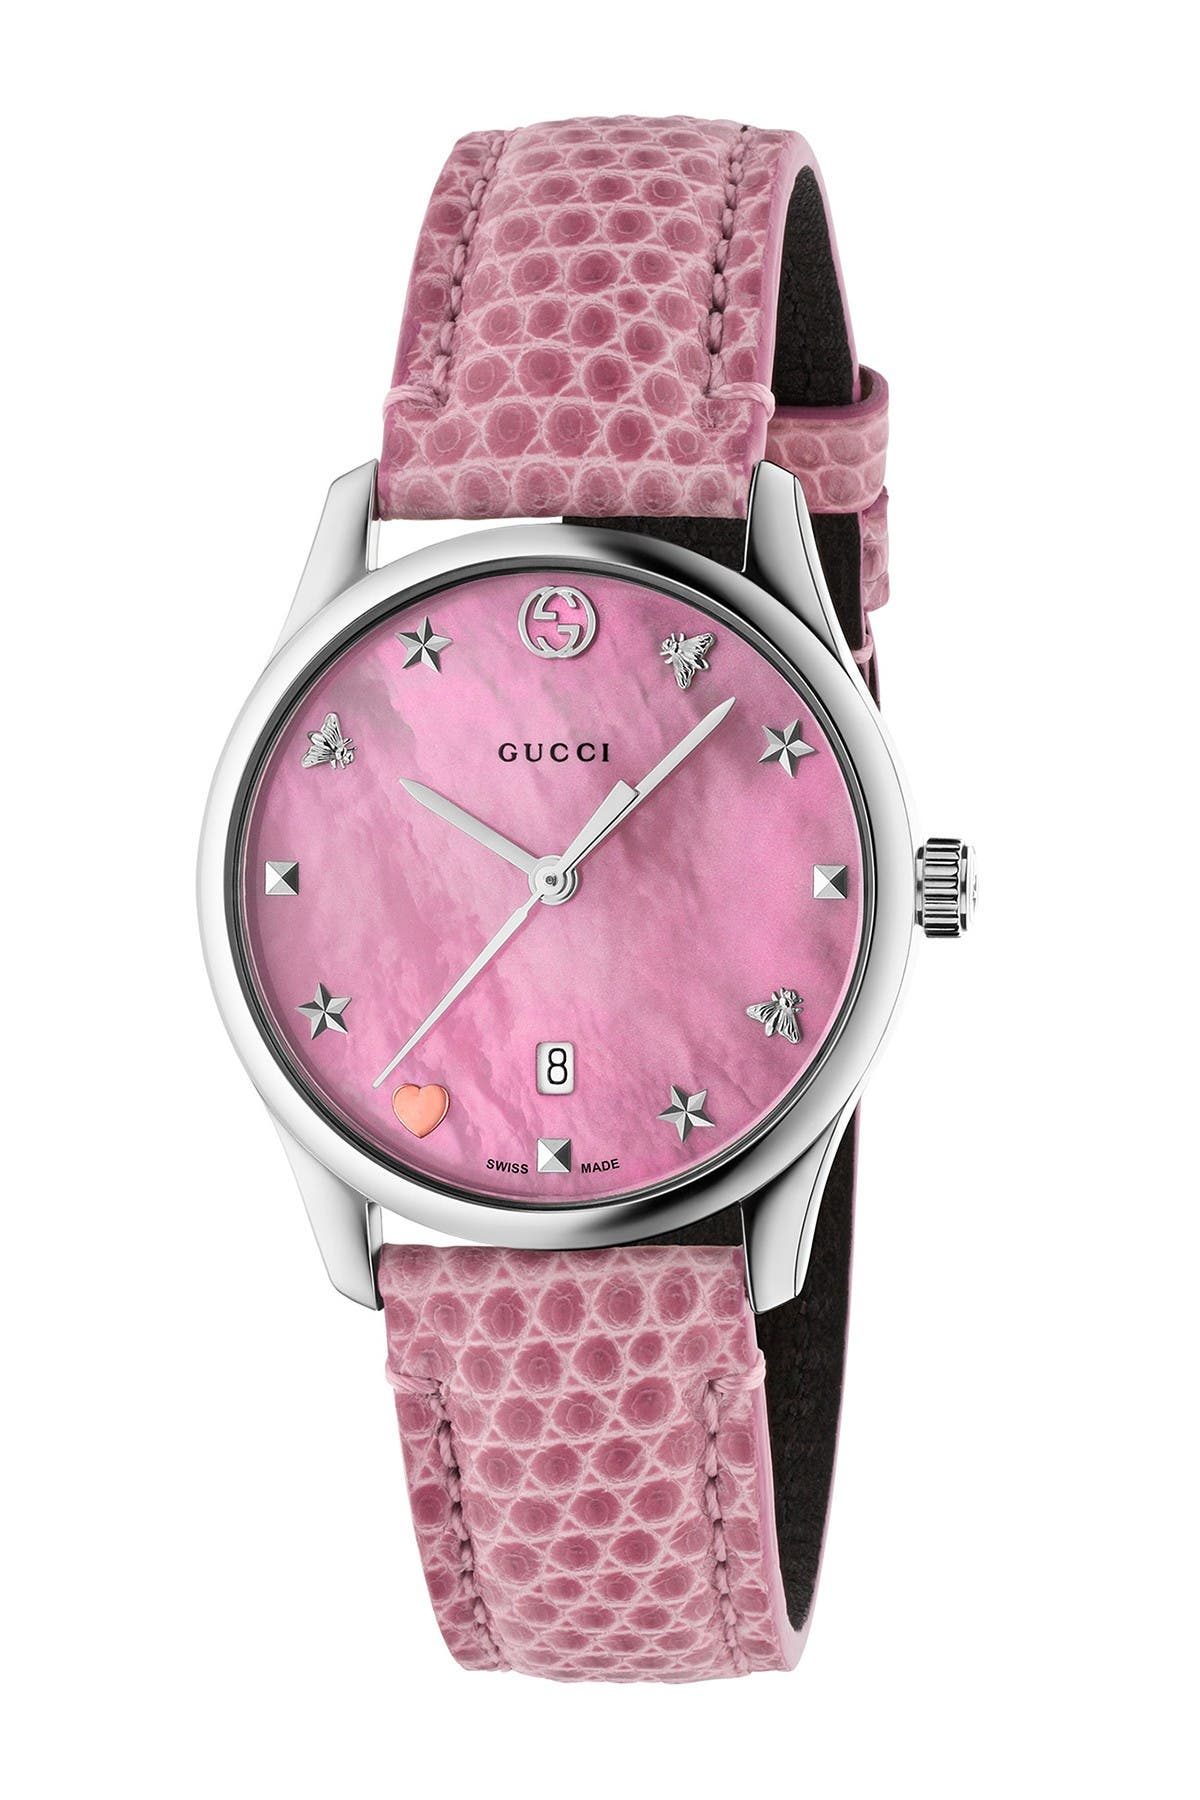 Image of GUCCI Women's 126SM29 Mother of Pearl Lizard Leather Strap Watch, 29mm